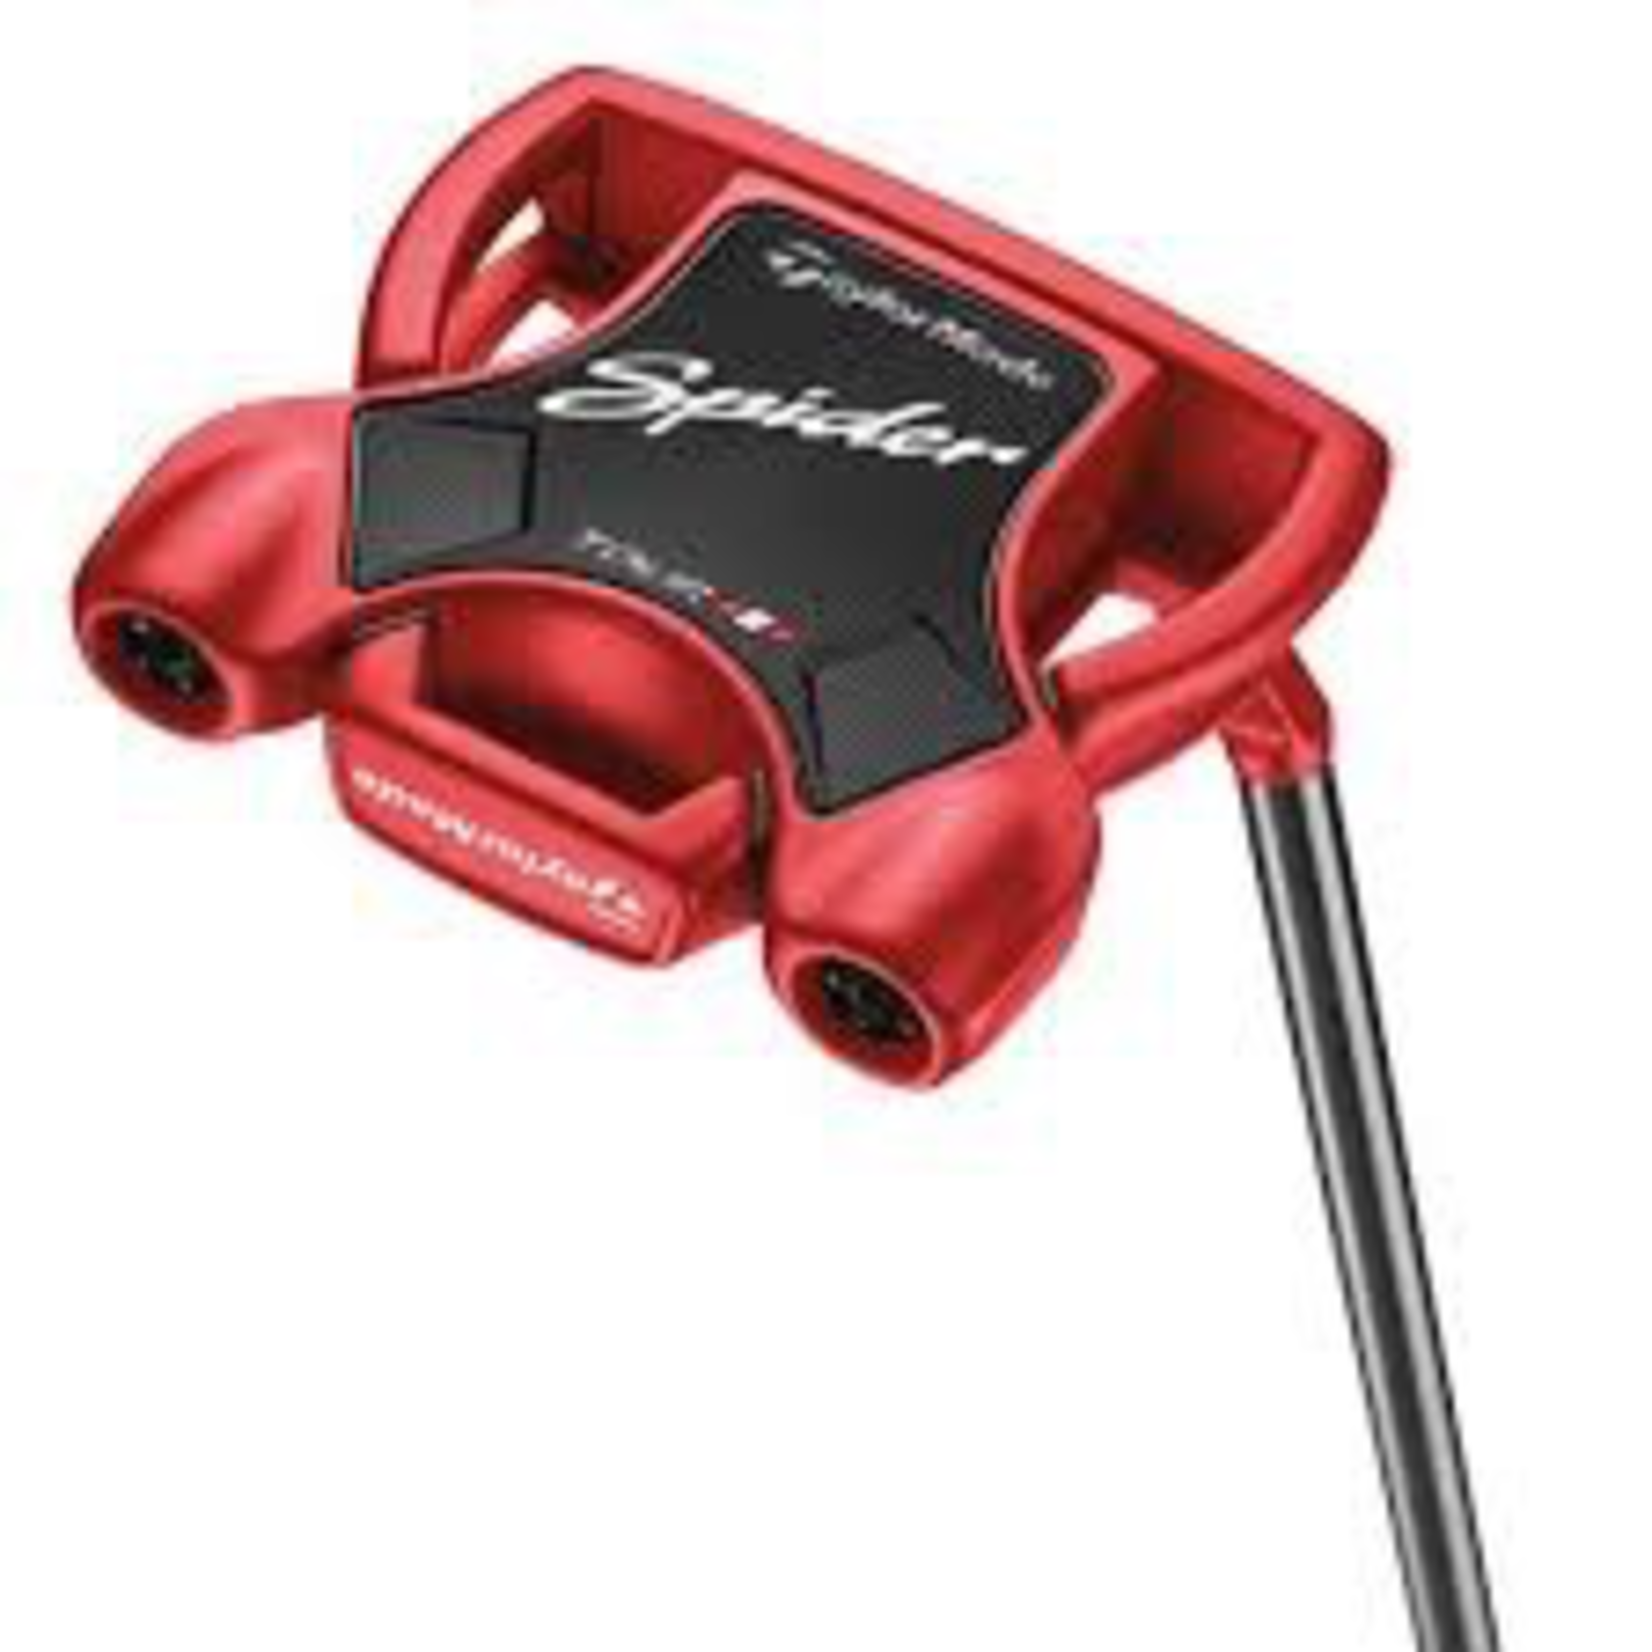 TAYLORMADE TAYLORMADE SPIDER TOUR PUTTER